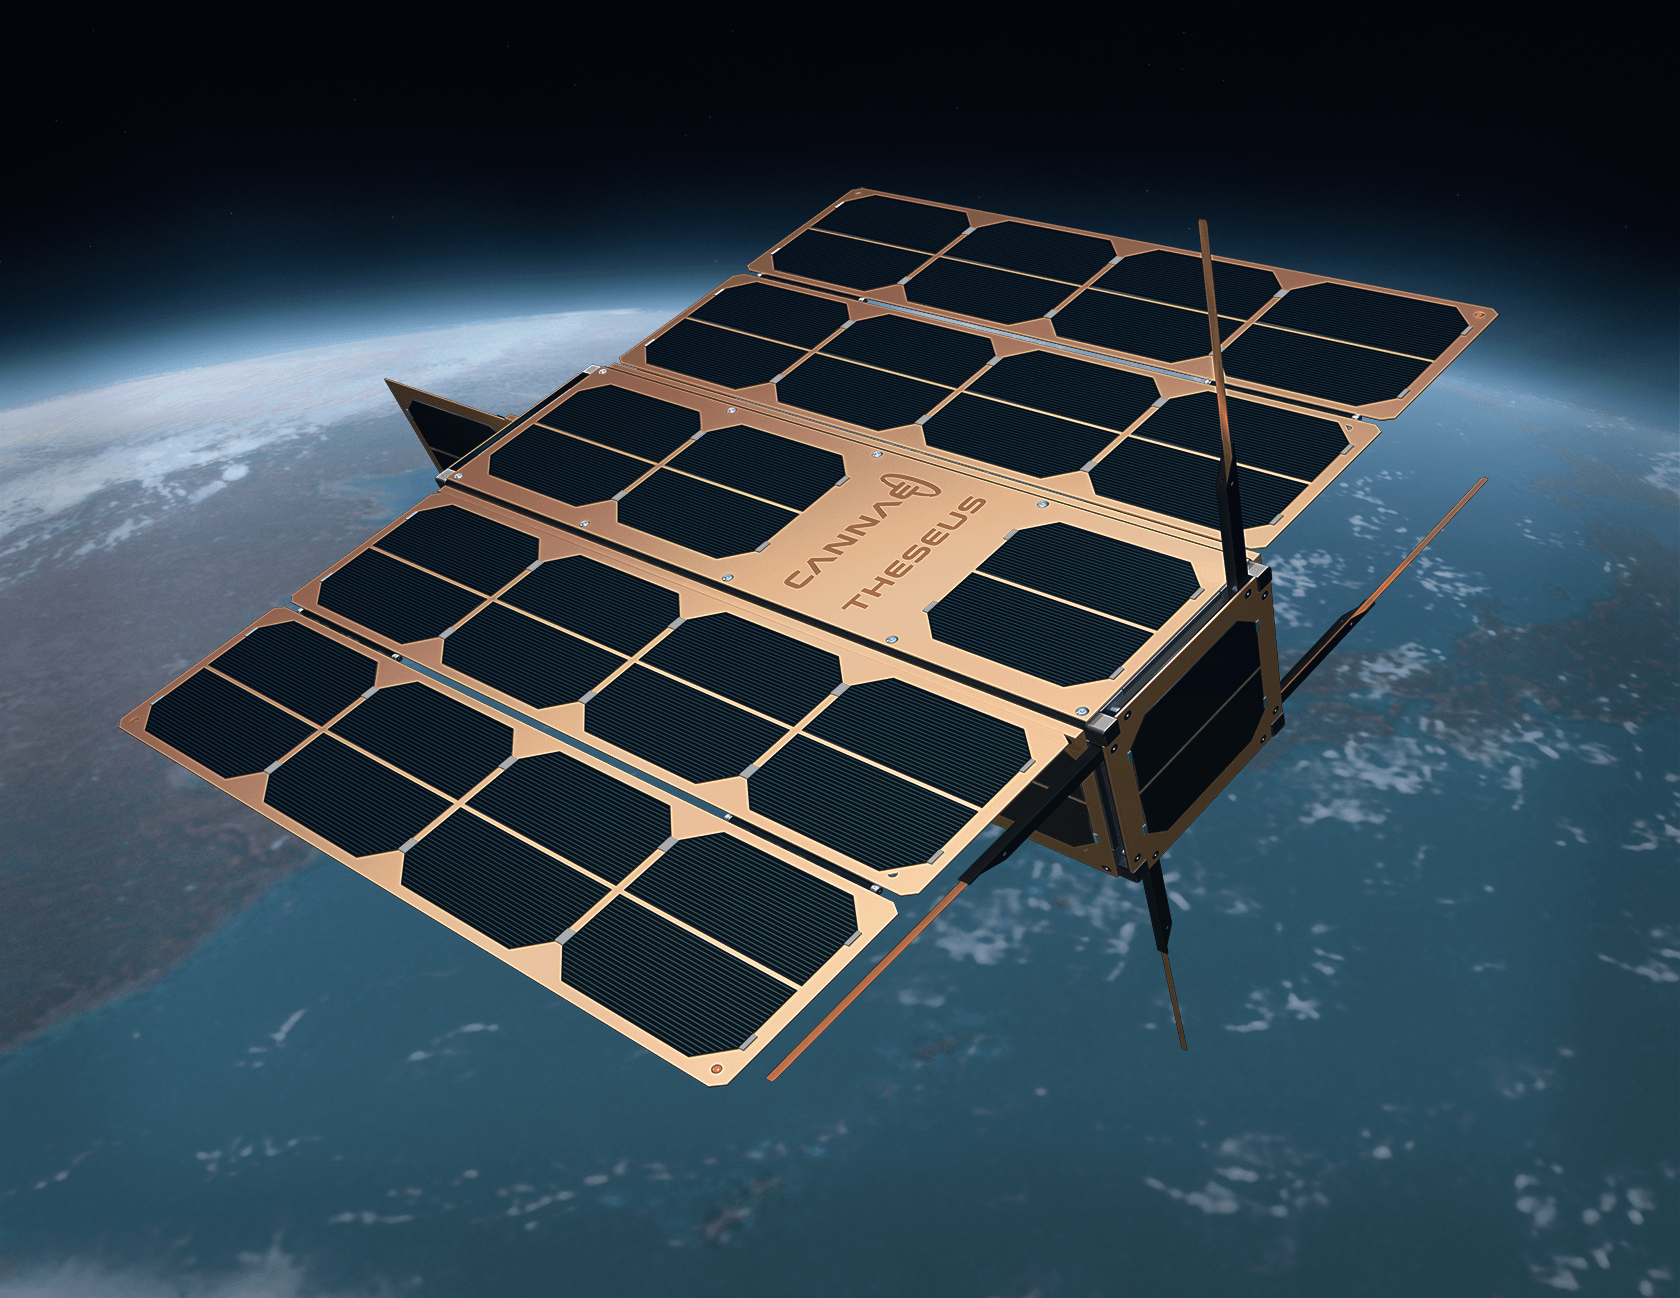 Cubesat Mission Clarification